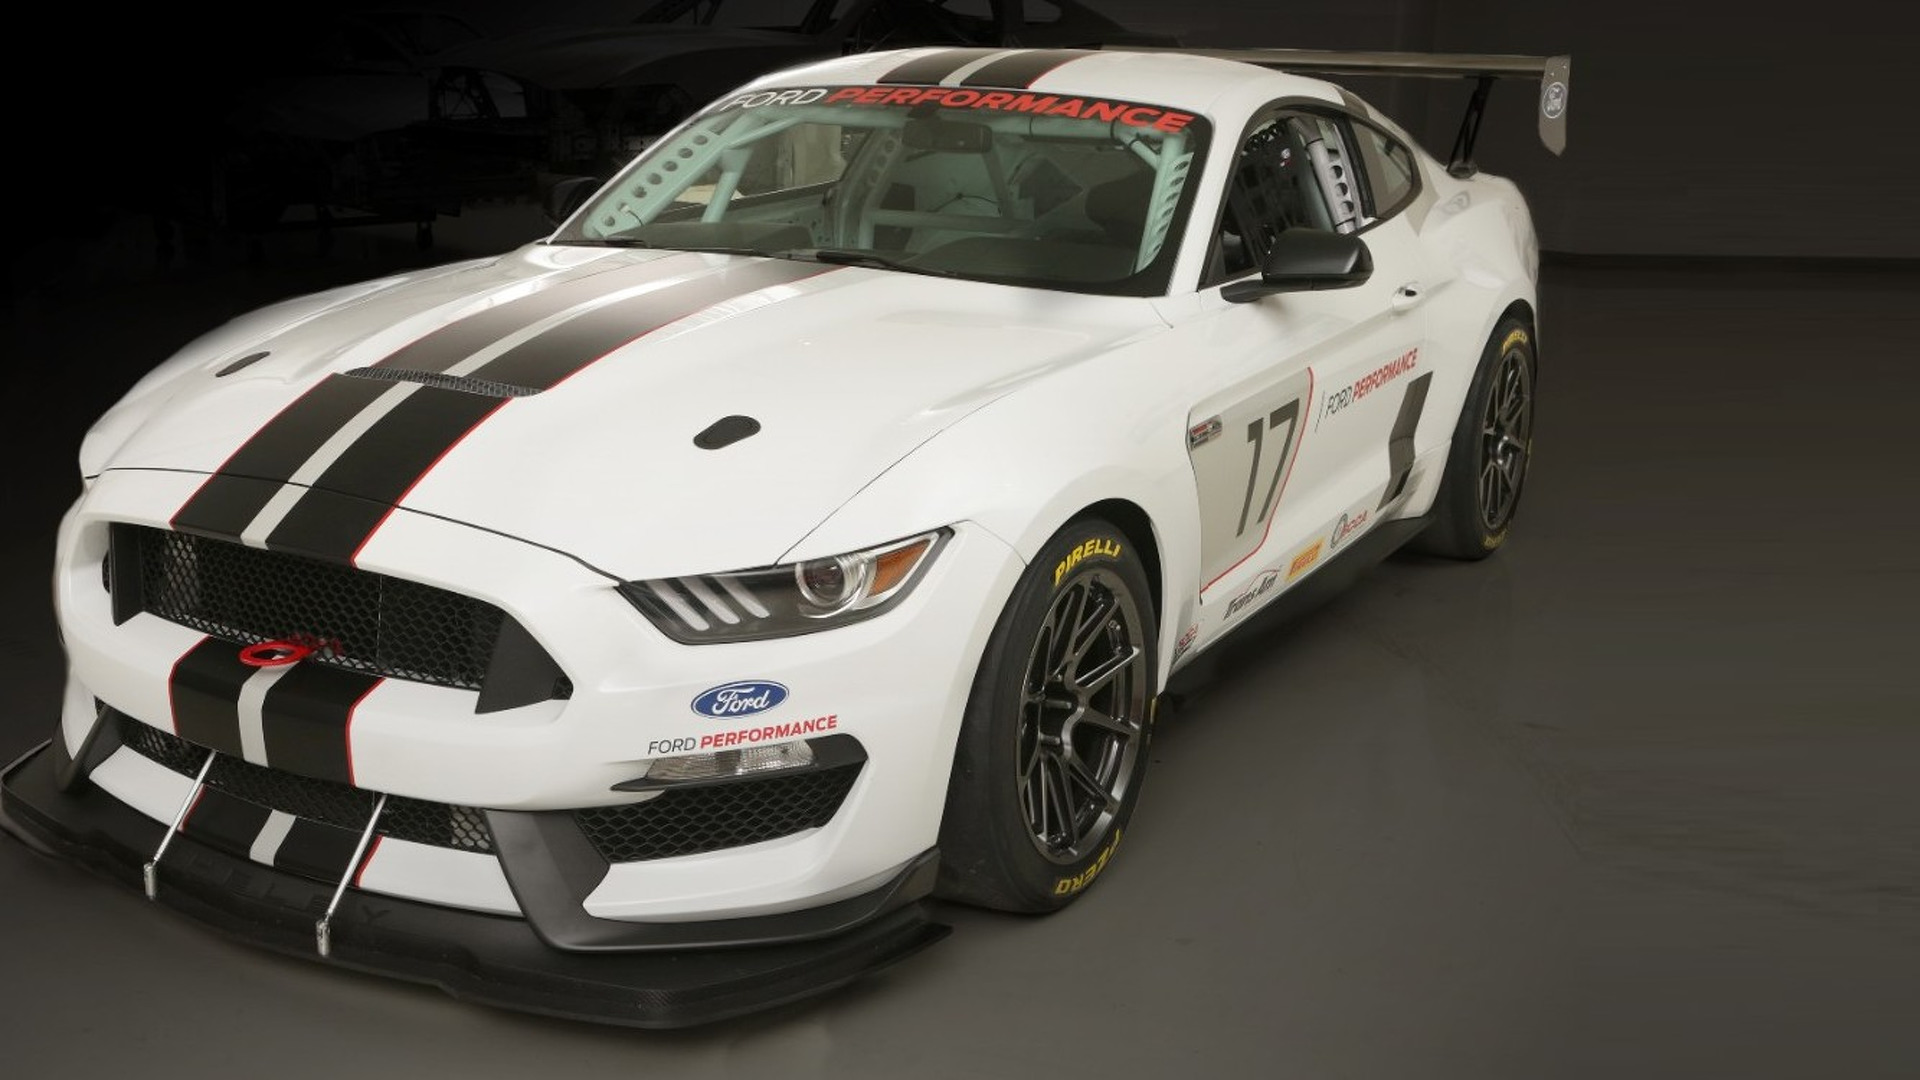 You can\'t drive the Ford Mustang FP350S on public roads